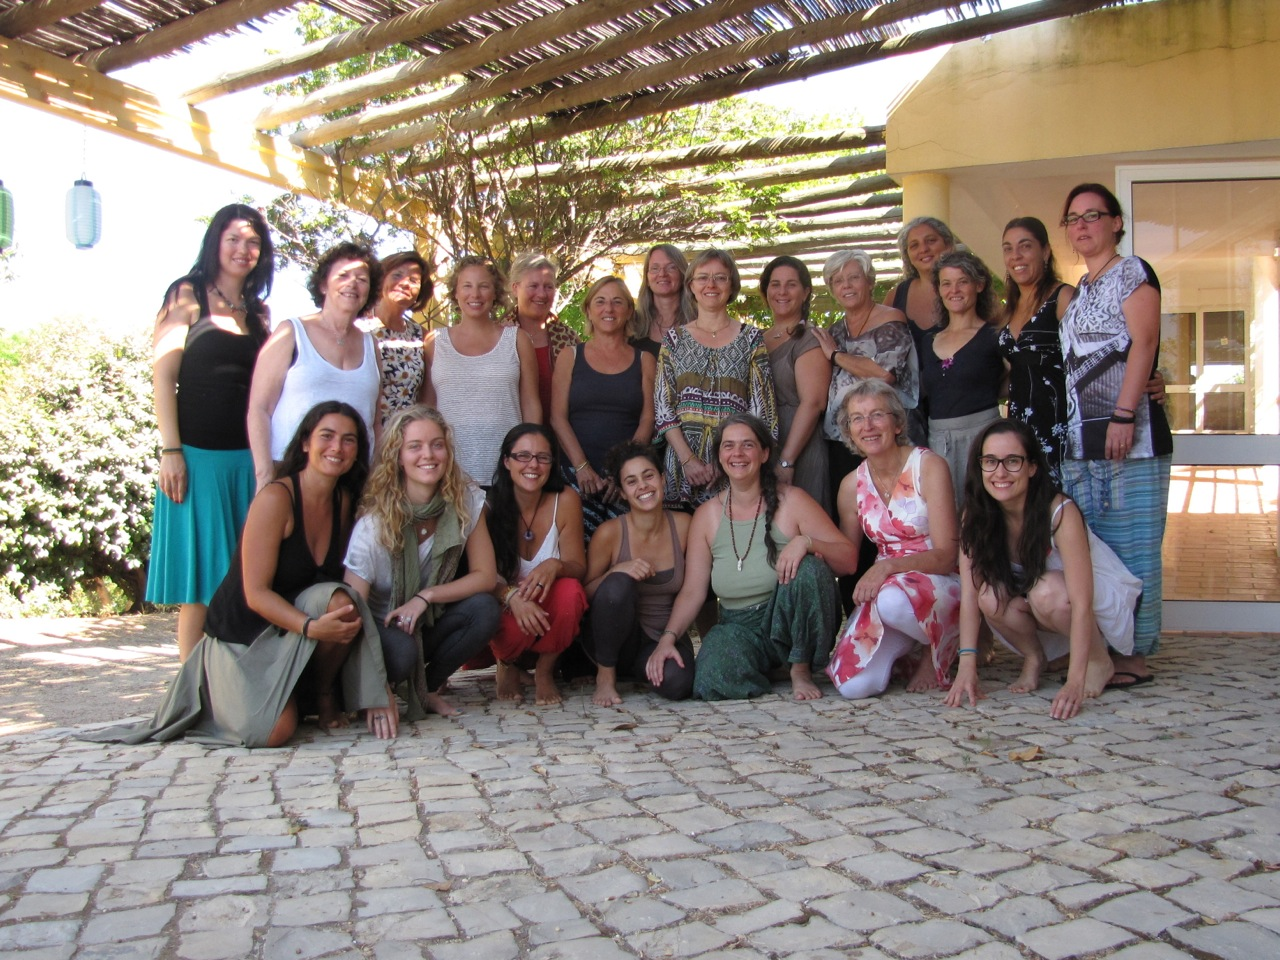 EDN meeting August 2014 in Portugal